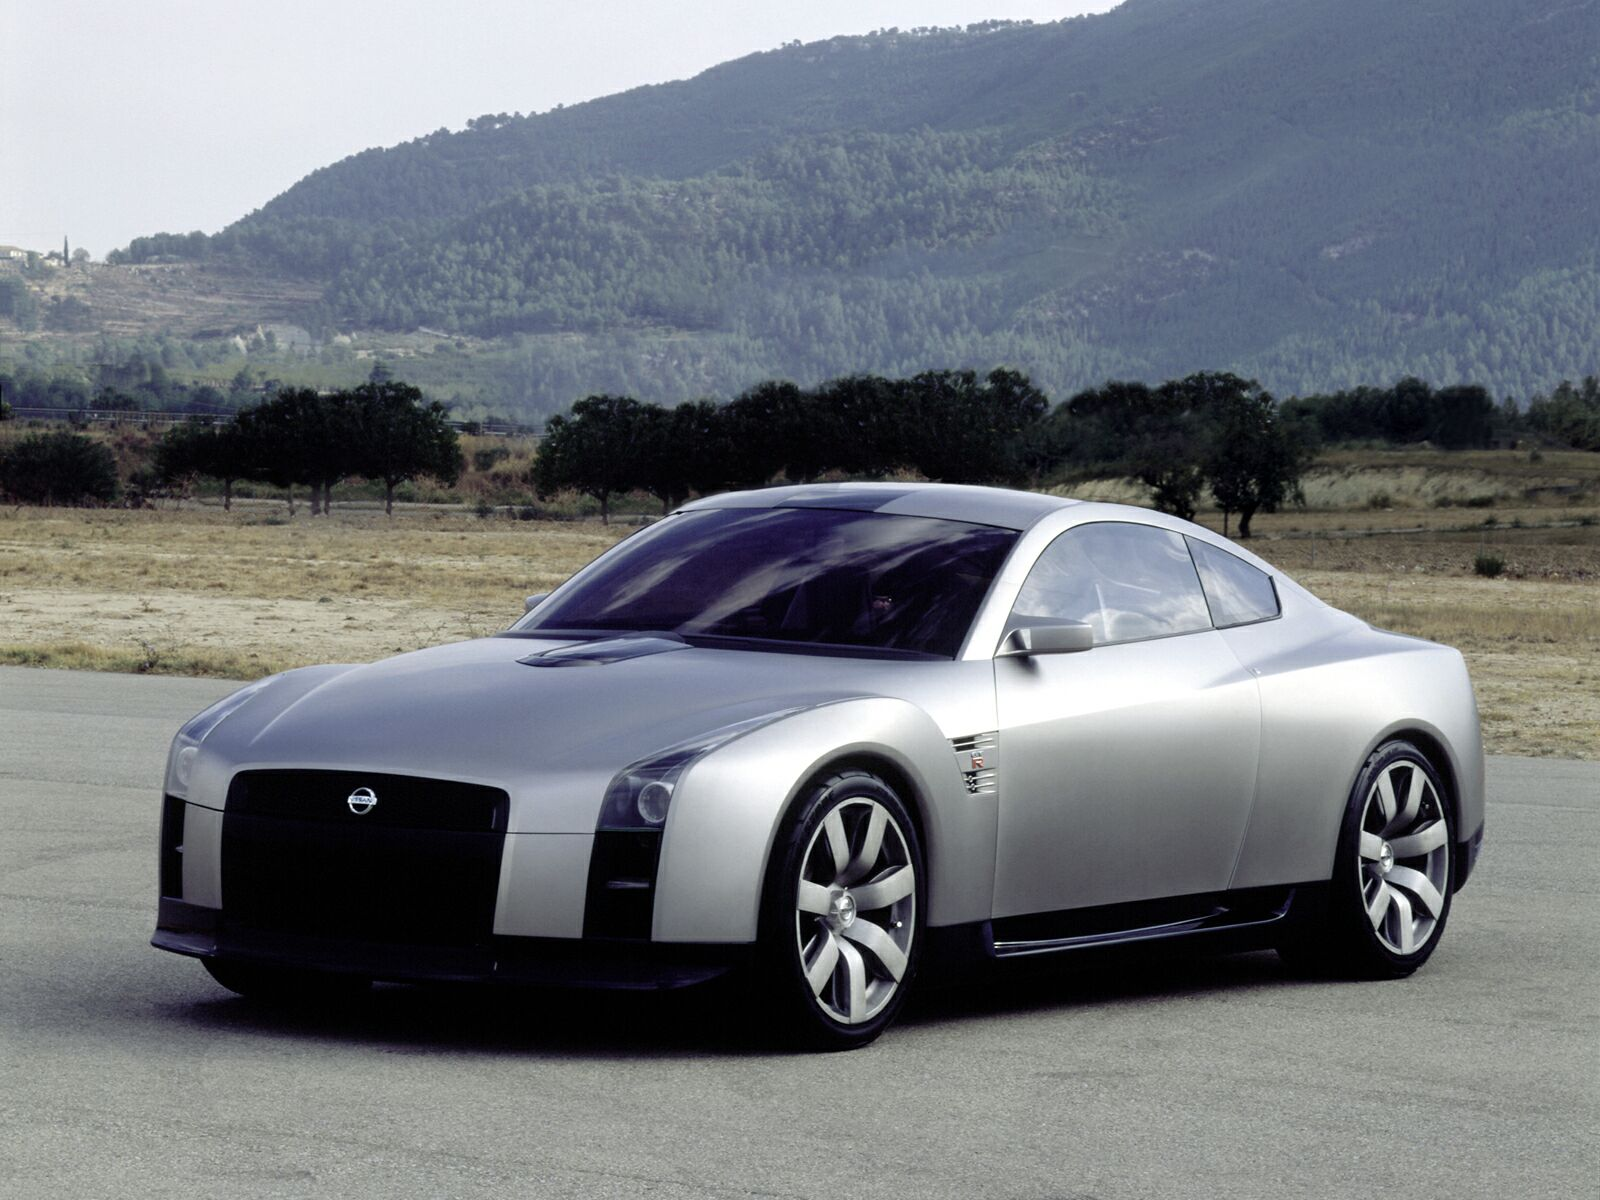 Nissan Gt R Proto Concept 2001 Old Concept Cars